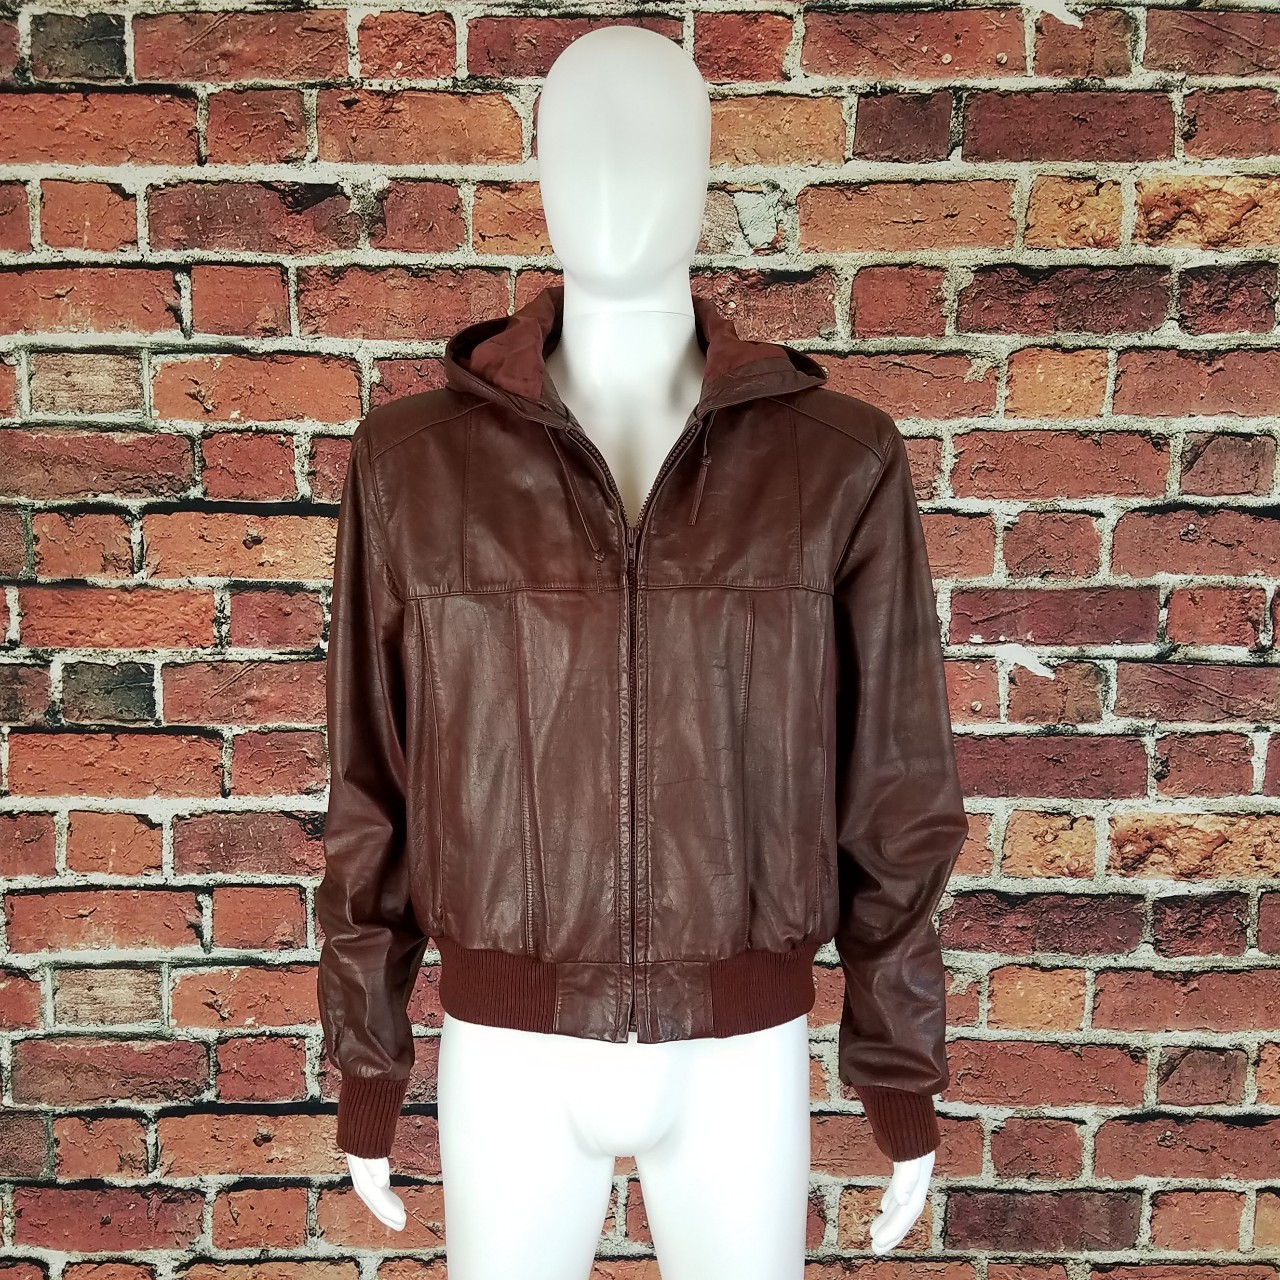 Product Image 1 - Brand: Wilson's Suede & Leather